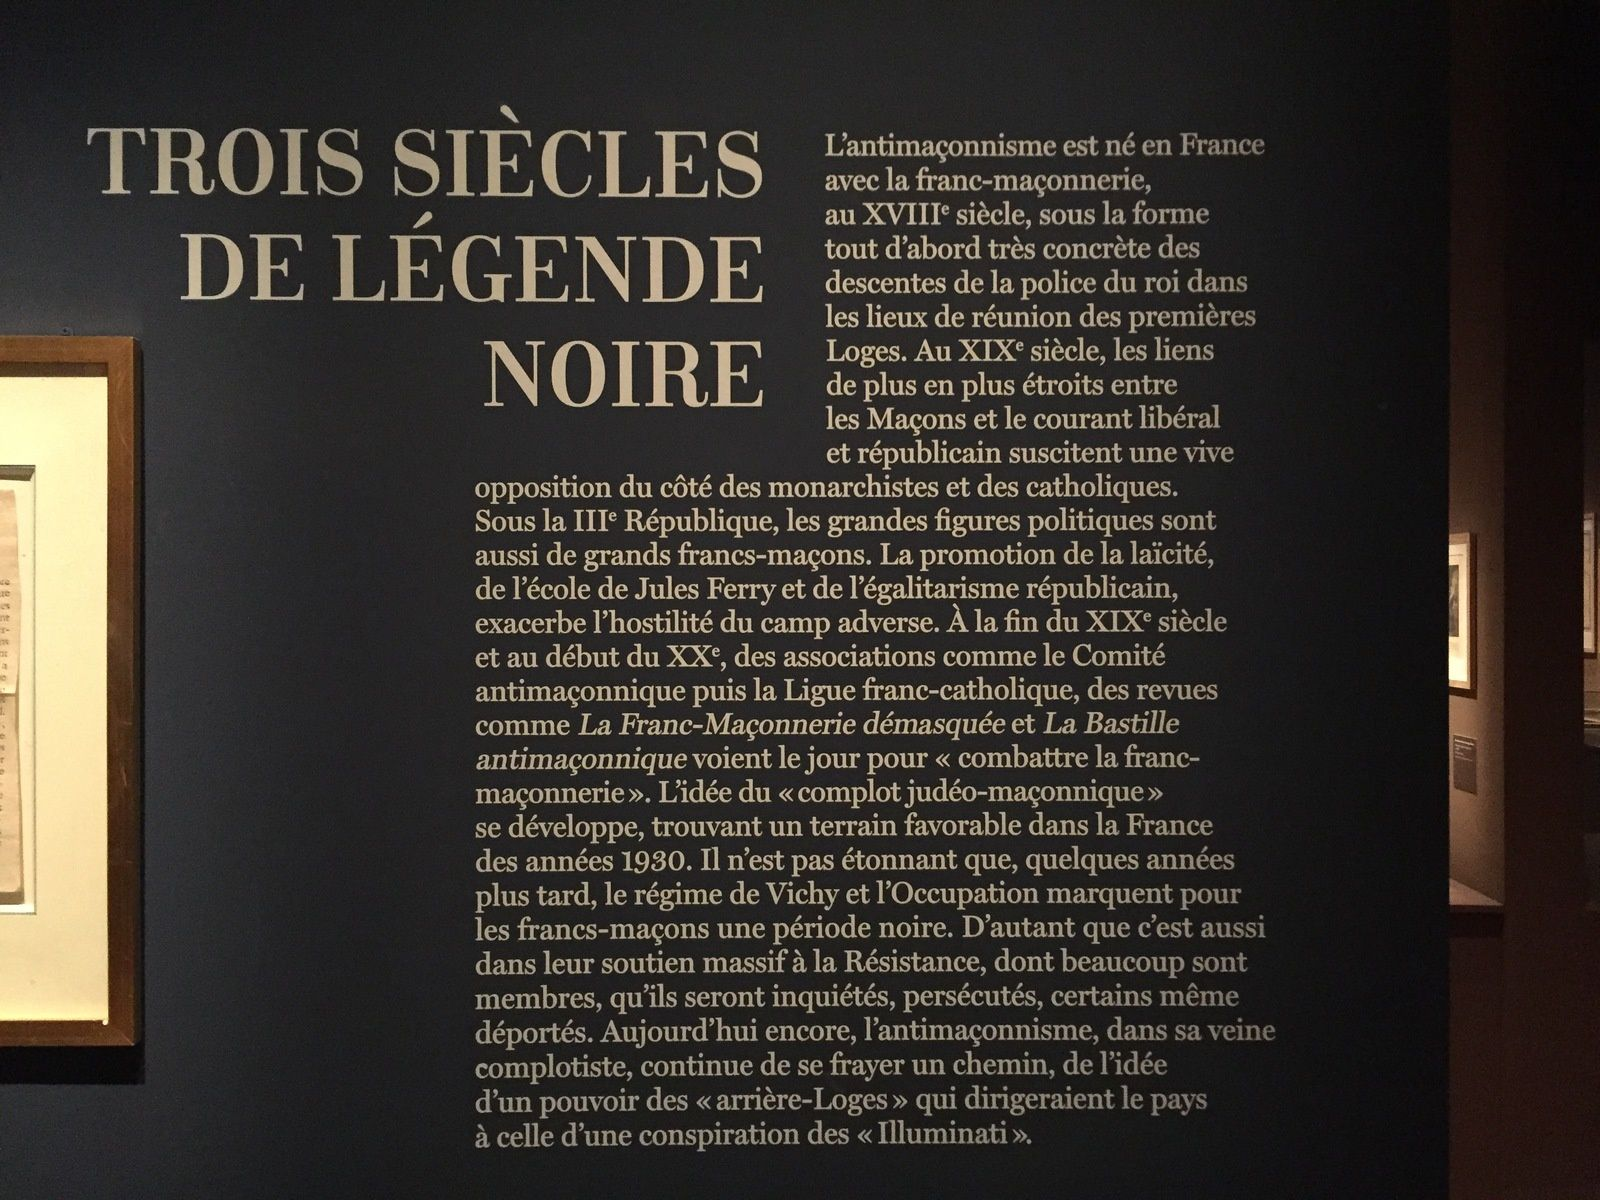 L'exposition indispensable...